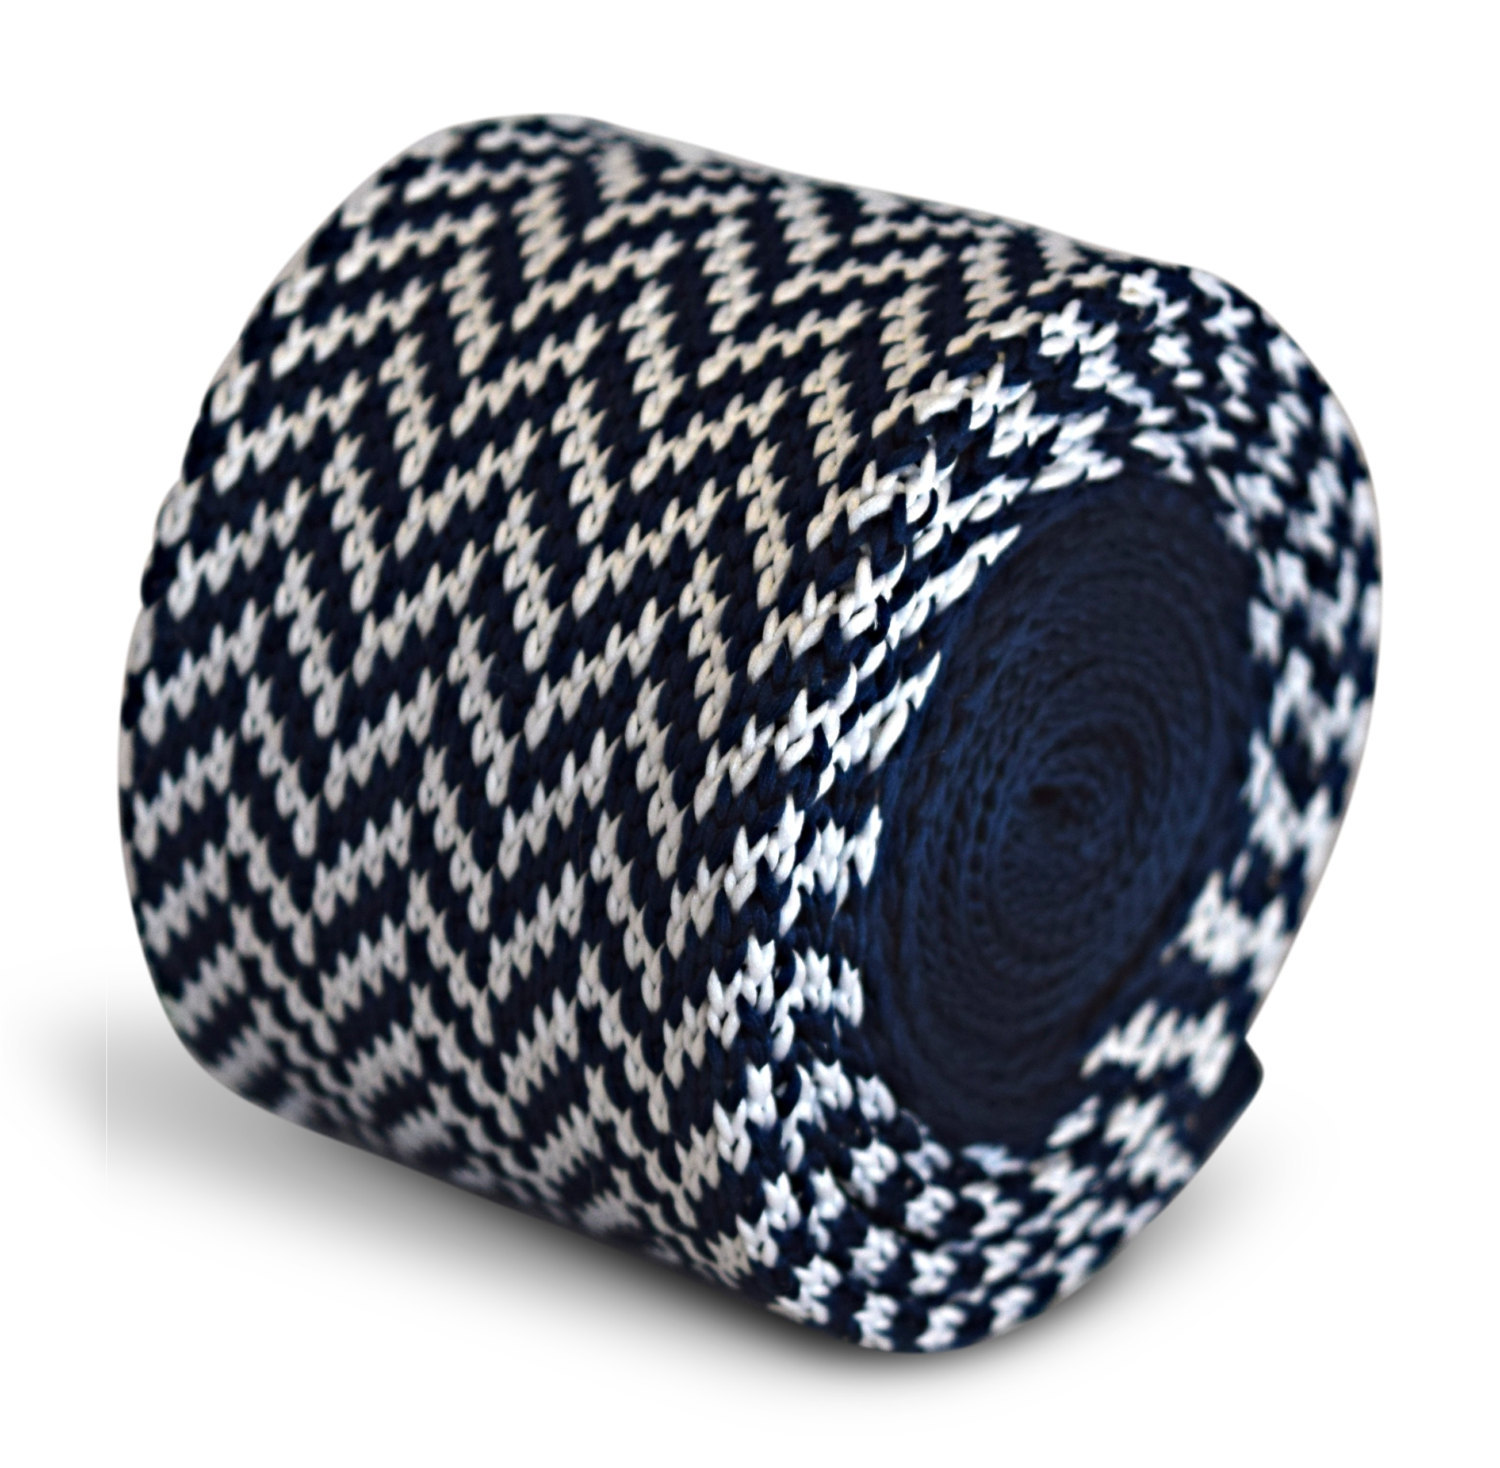 navy blue and white herringbone knitted skinny tie by Frederick Thomas FT3292